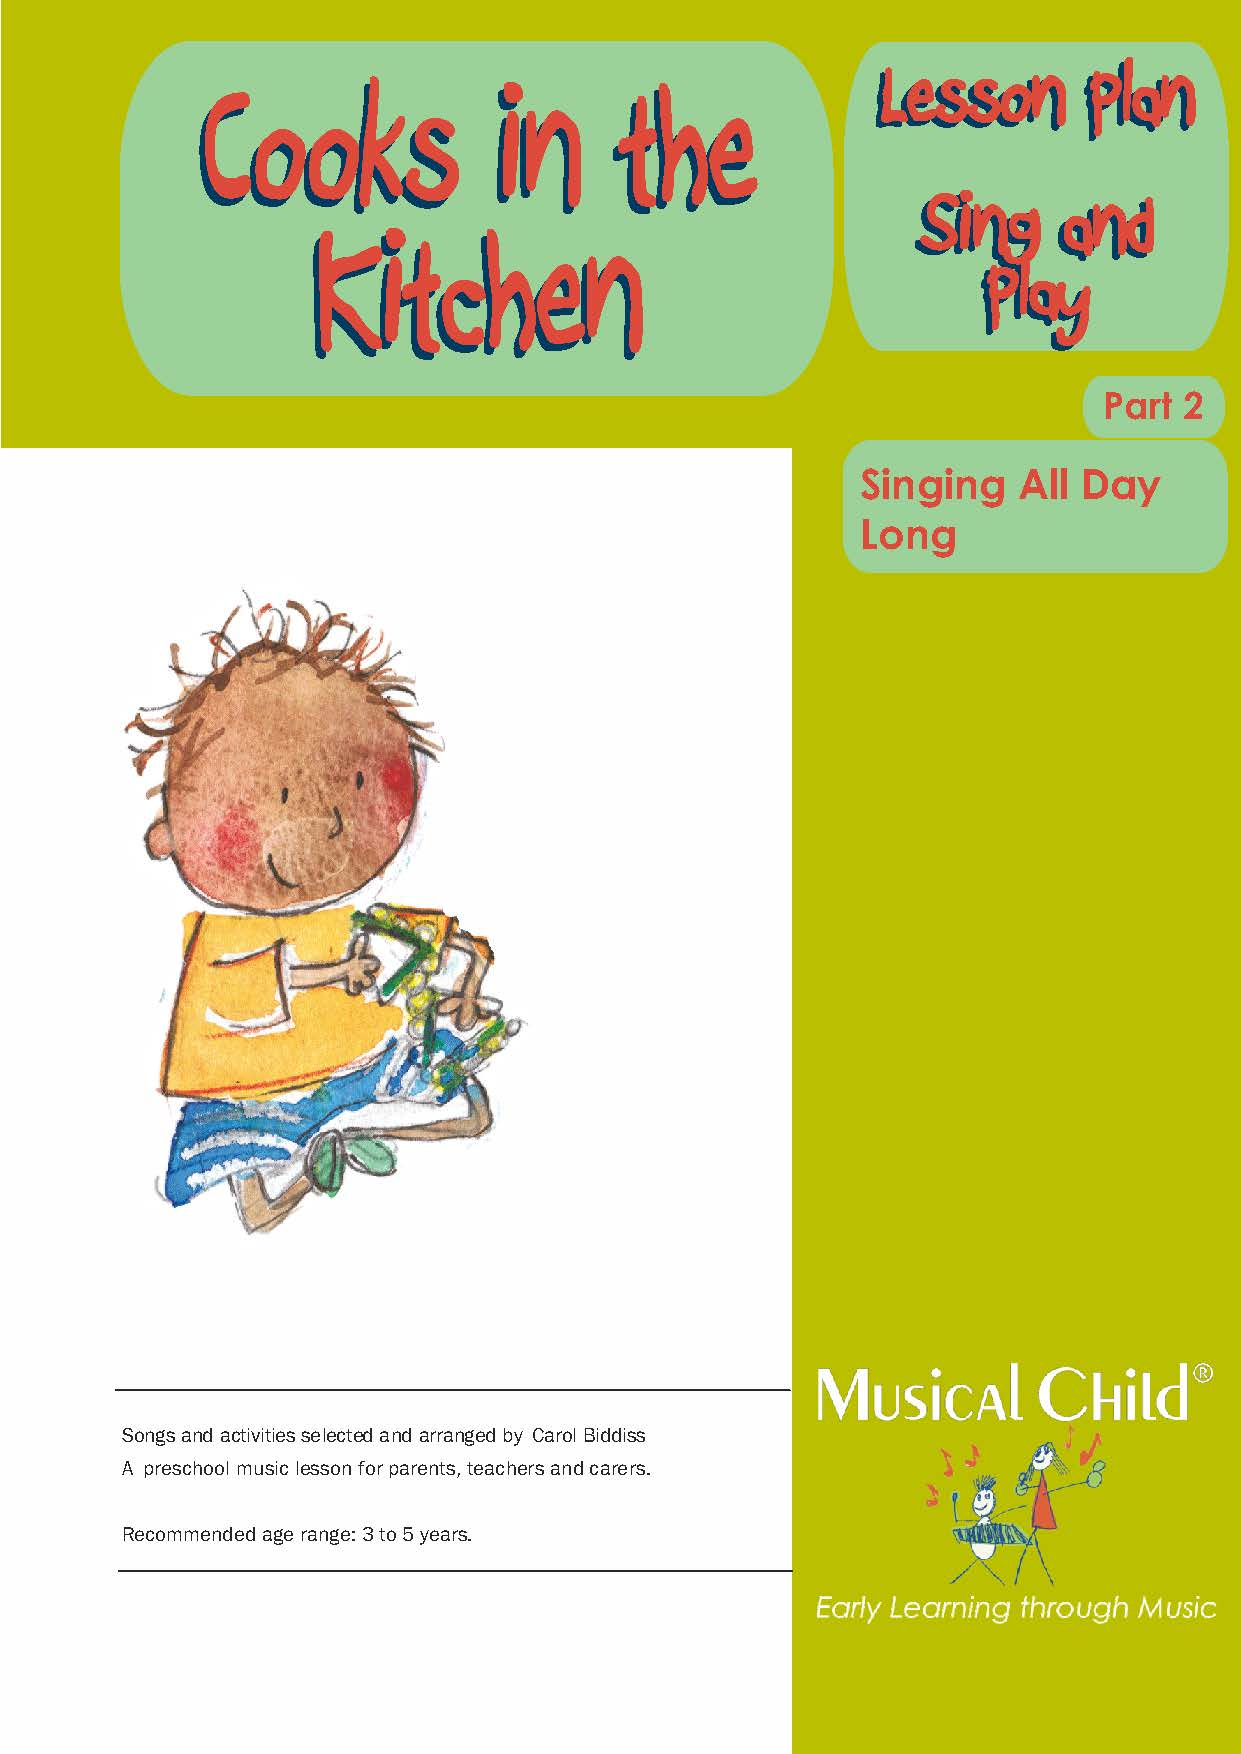 Cooks in the kitchen preschool music lesson plan 2 download Kitchen design lesson plans